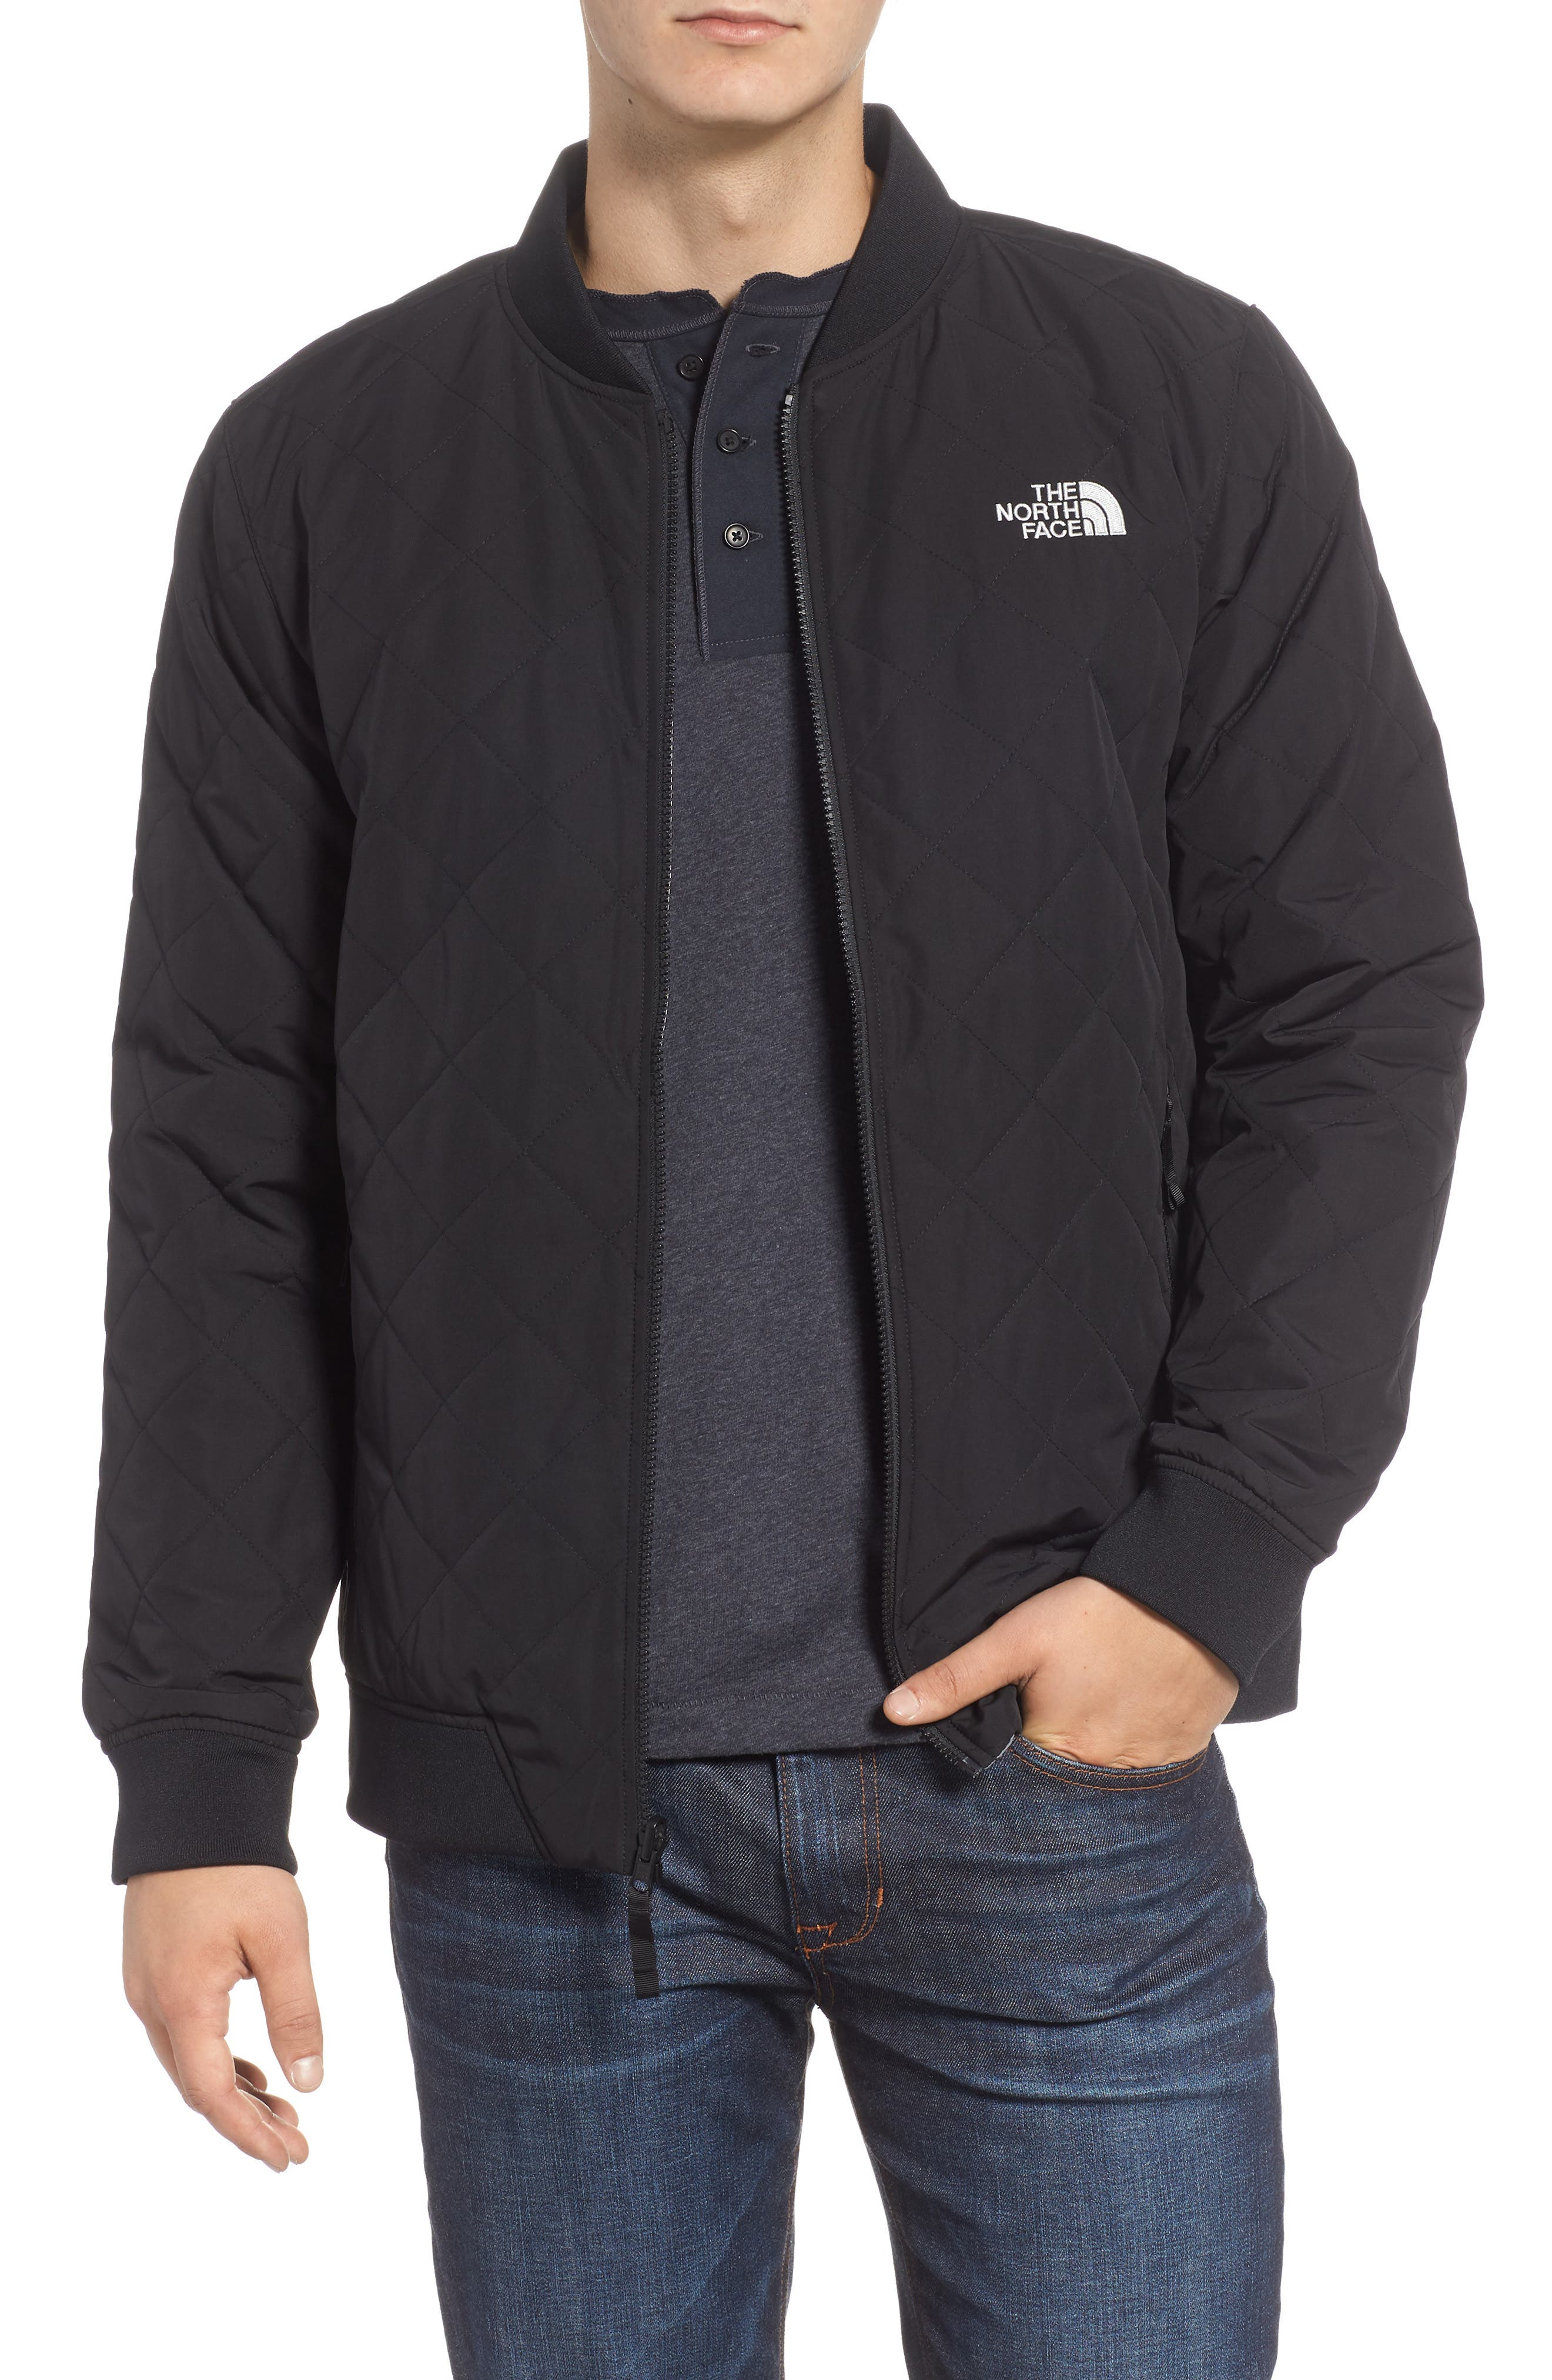 THE NORTH FACE, Jester Reversible Bomber Jacket, Main thumbnail 1, color, 001